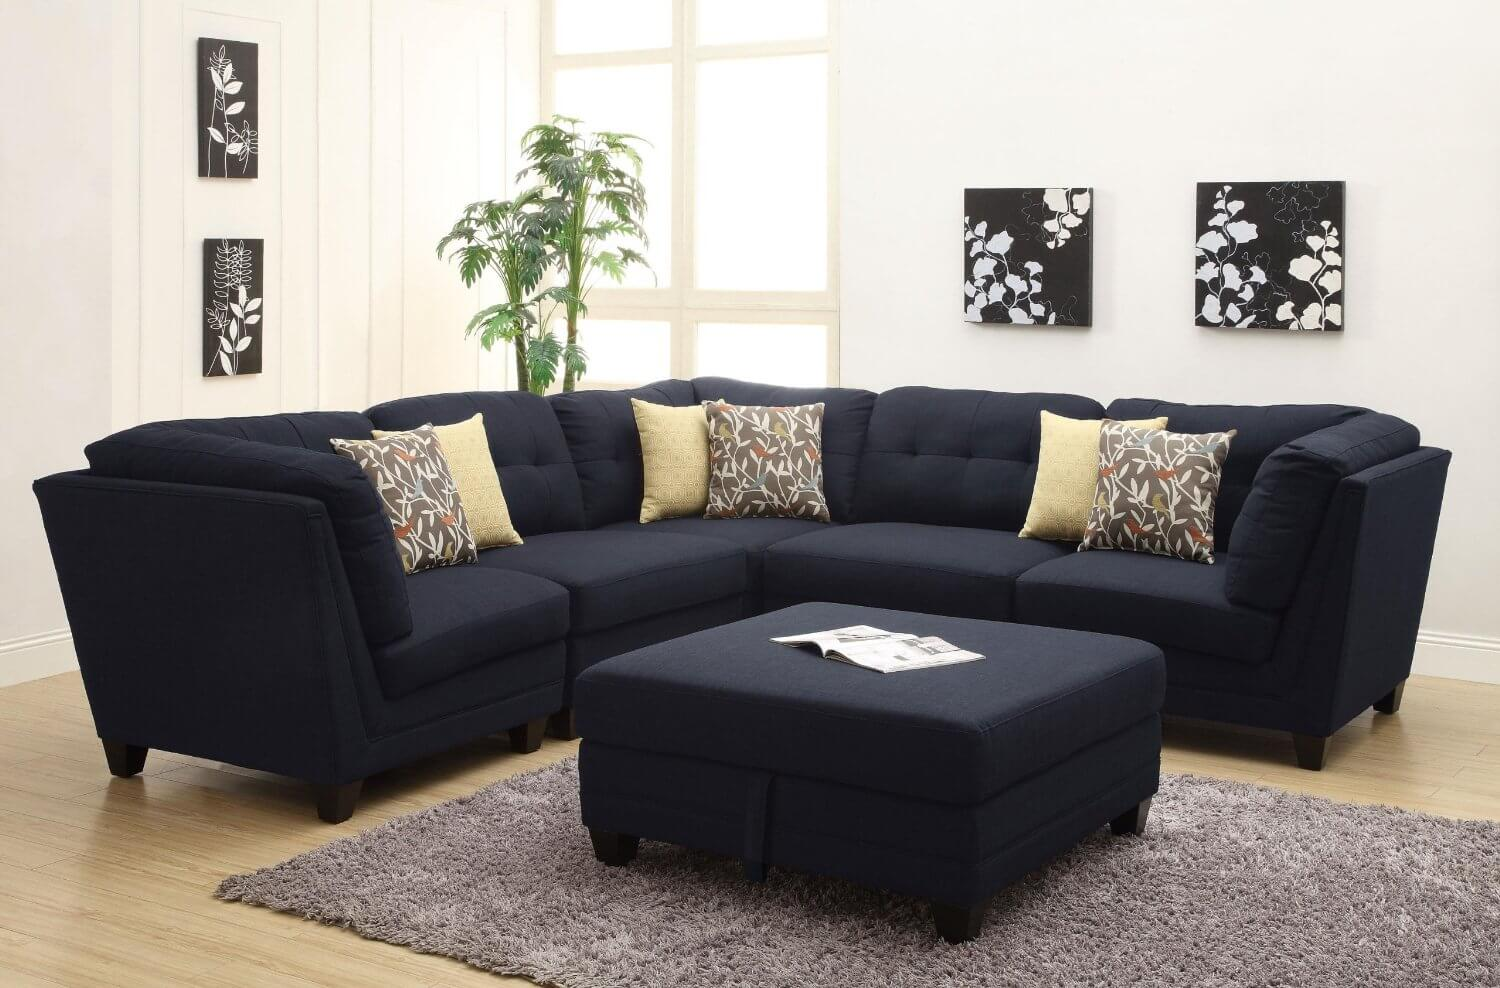 3 piece microfiber sectional sofa with chaise east london cinema 37 beautiful sofas under $1,000